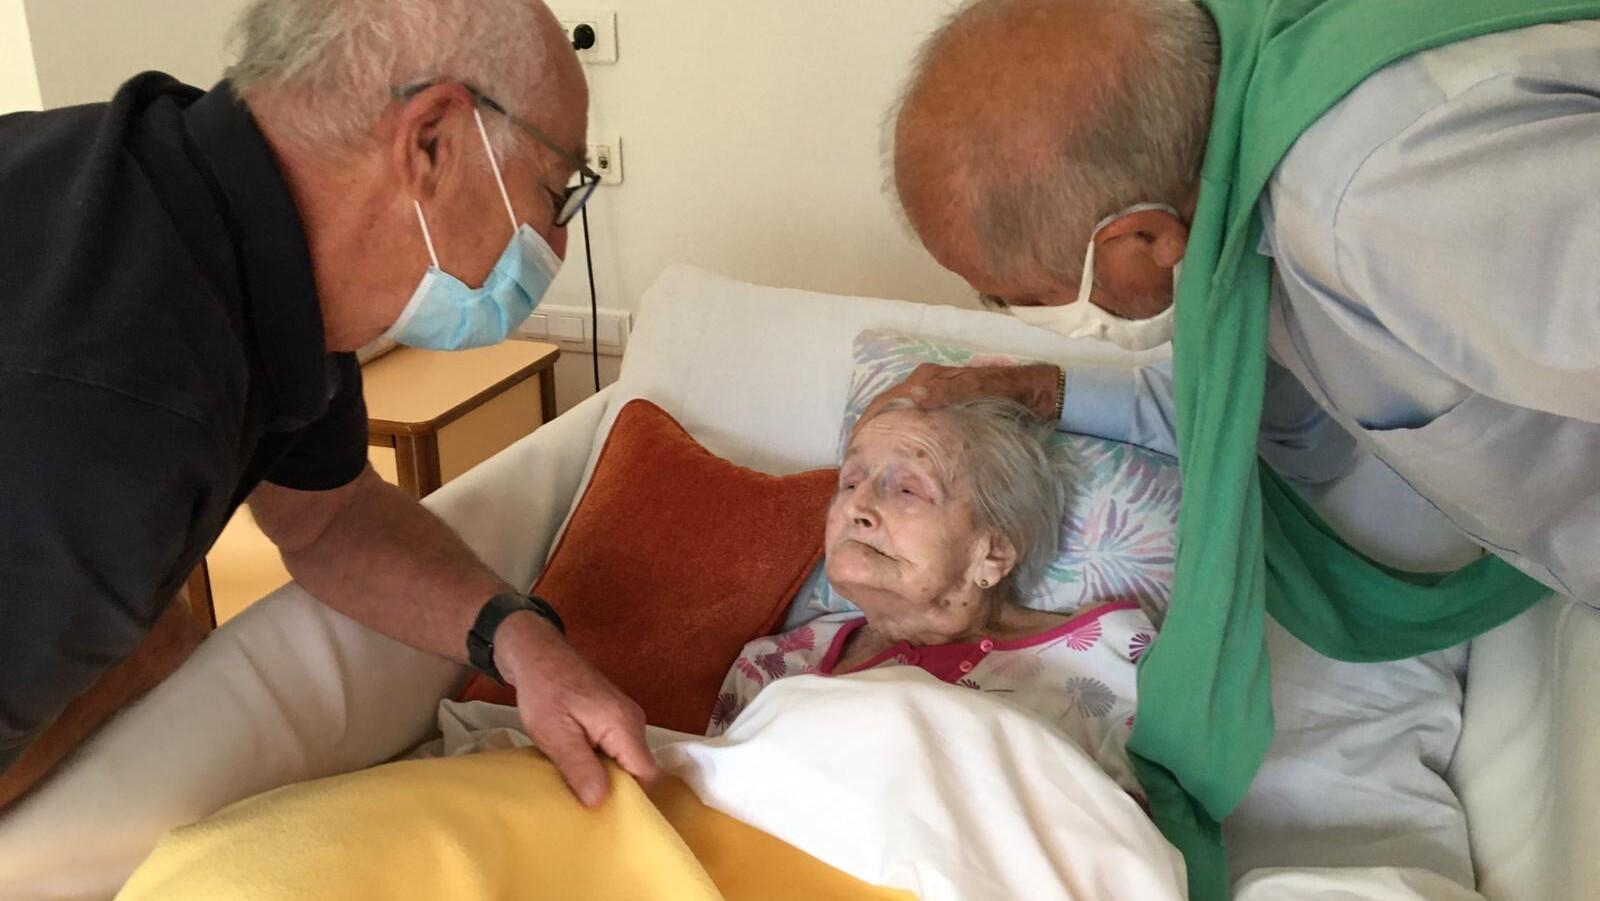 """After the first lockdown was lifted, the Geoffroy brothers visit their mother for the first time in two months at the """"Âge d'or"""" nursing home in Monestier-de-Clermont in Isère."""